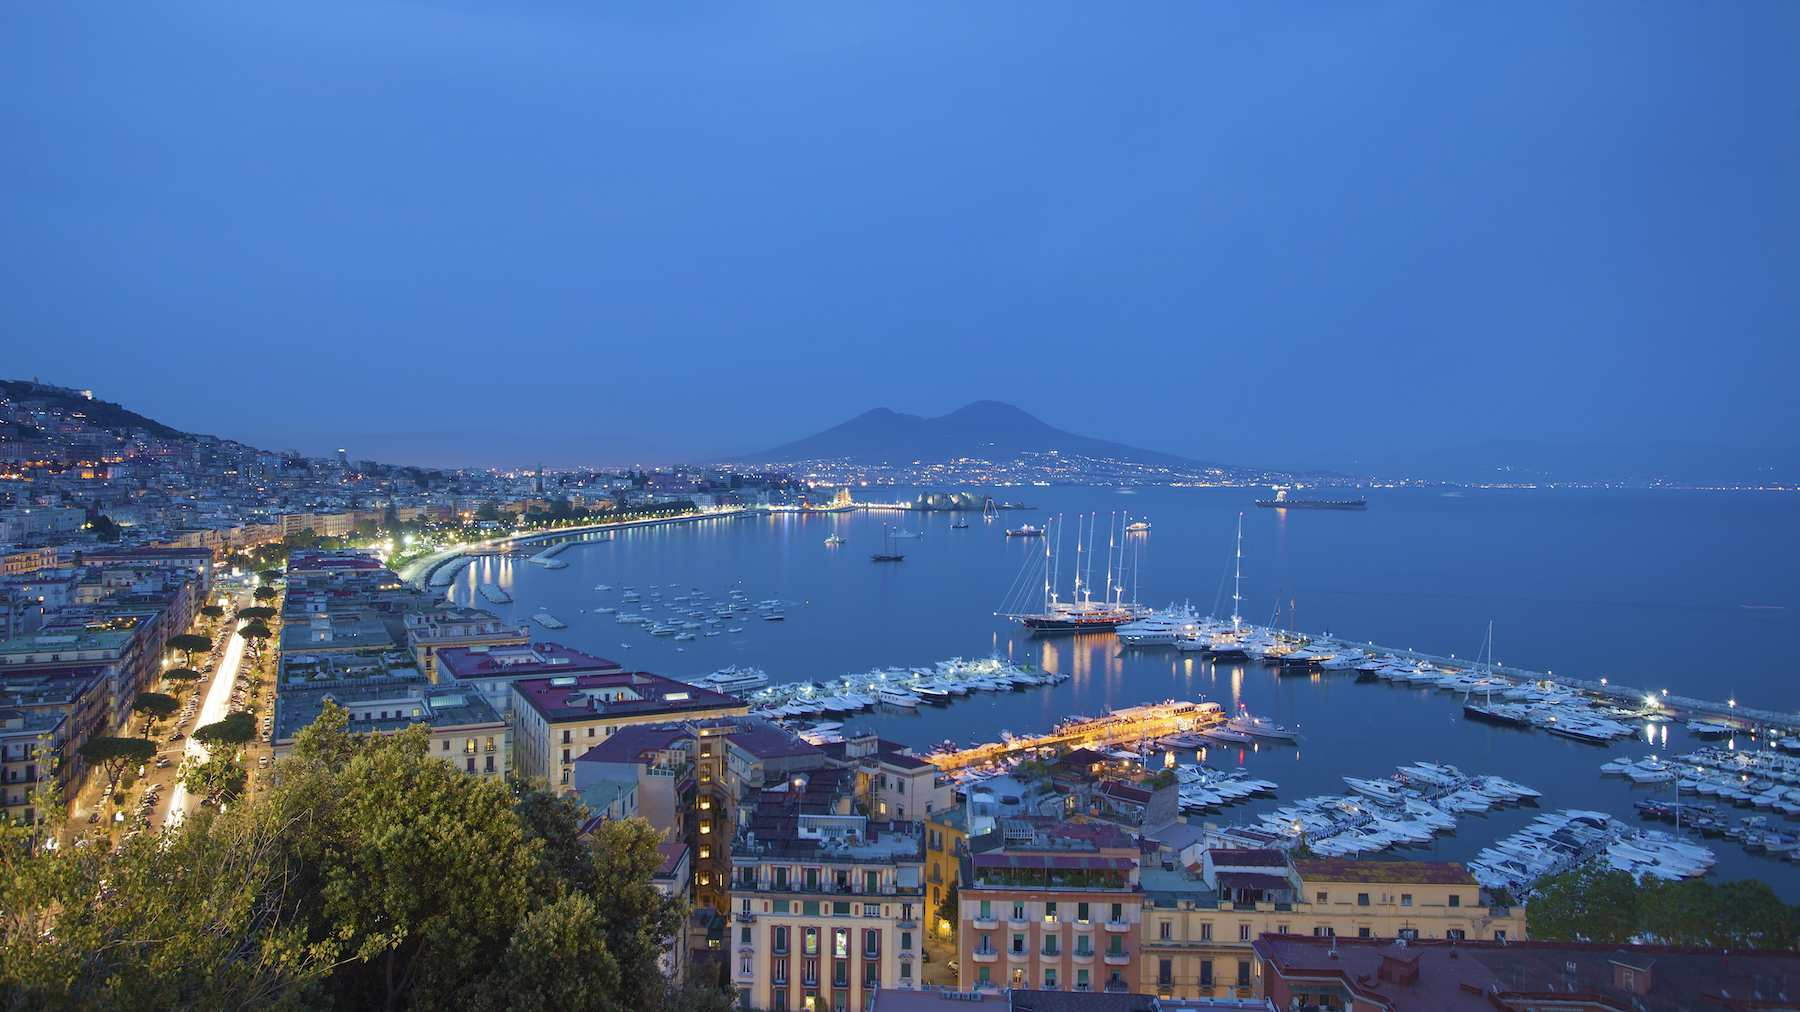 Pictures of naples photo gallery and movie of naples - Naples italy wallpaper ...